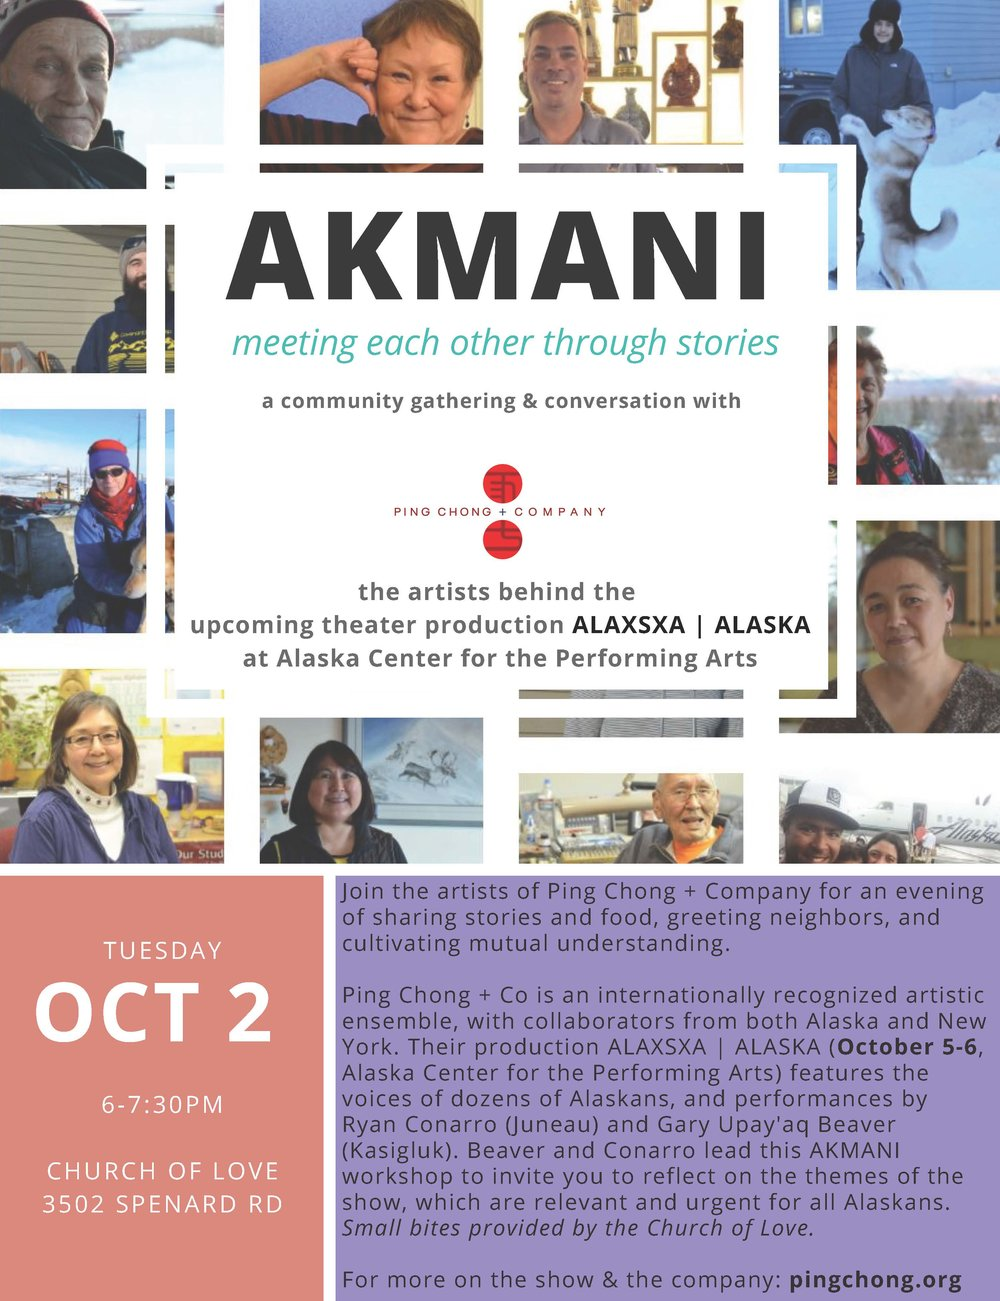 FLIER Akmani at Church of Love 10.2.18.jpg